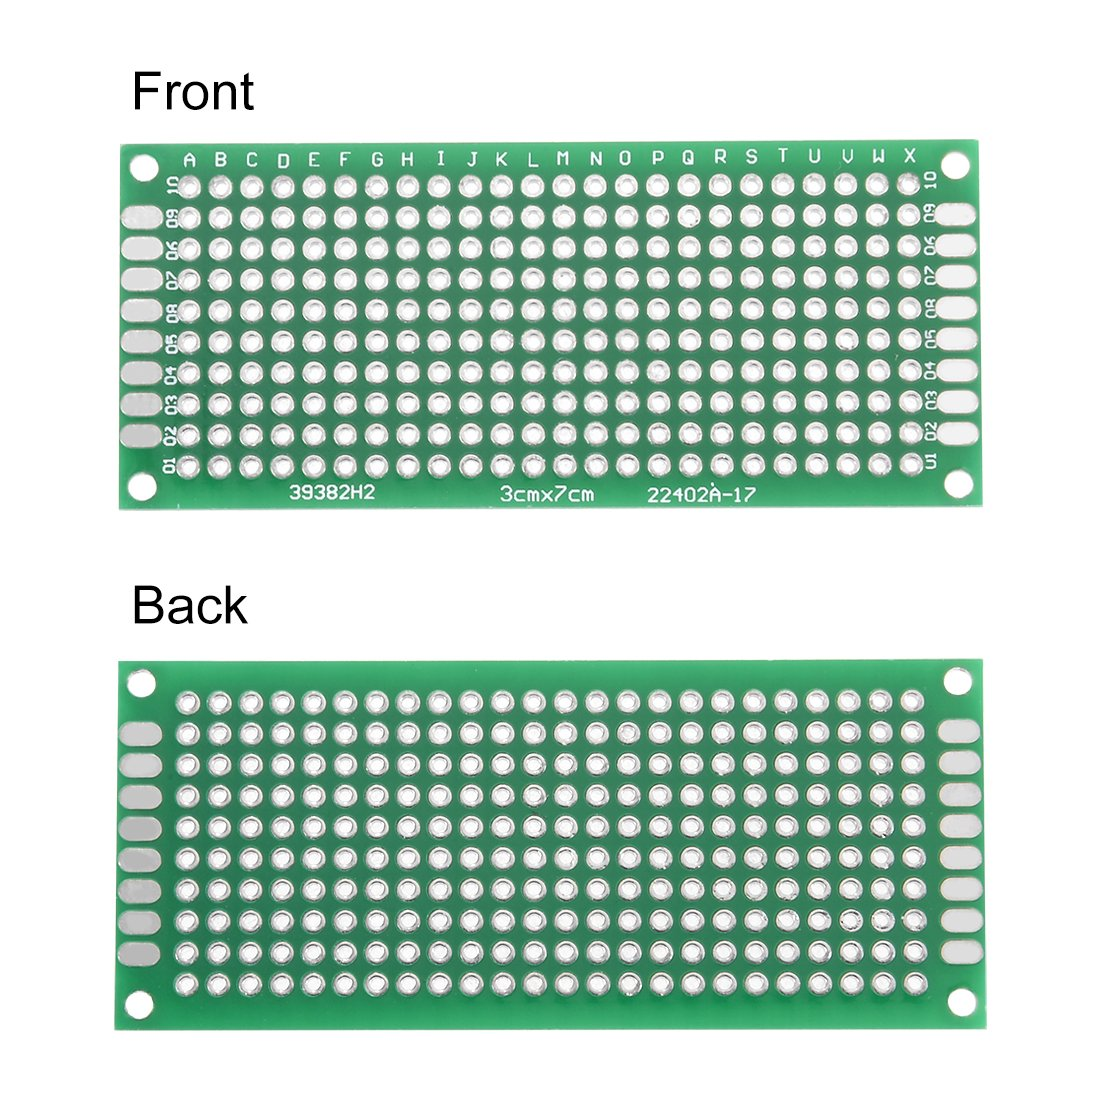 Uxcell 7x9cm Double Sided Universal Printed Circuit Board For Diy Pic Programmer Soldering 10pcs A18061500ux0234